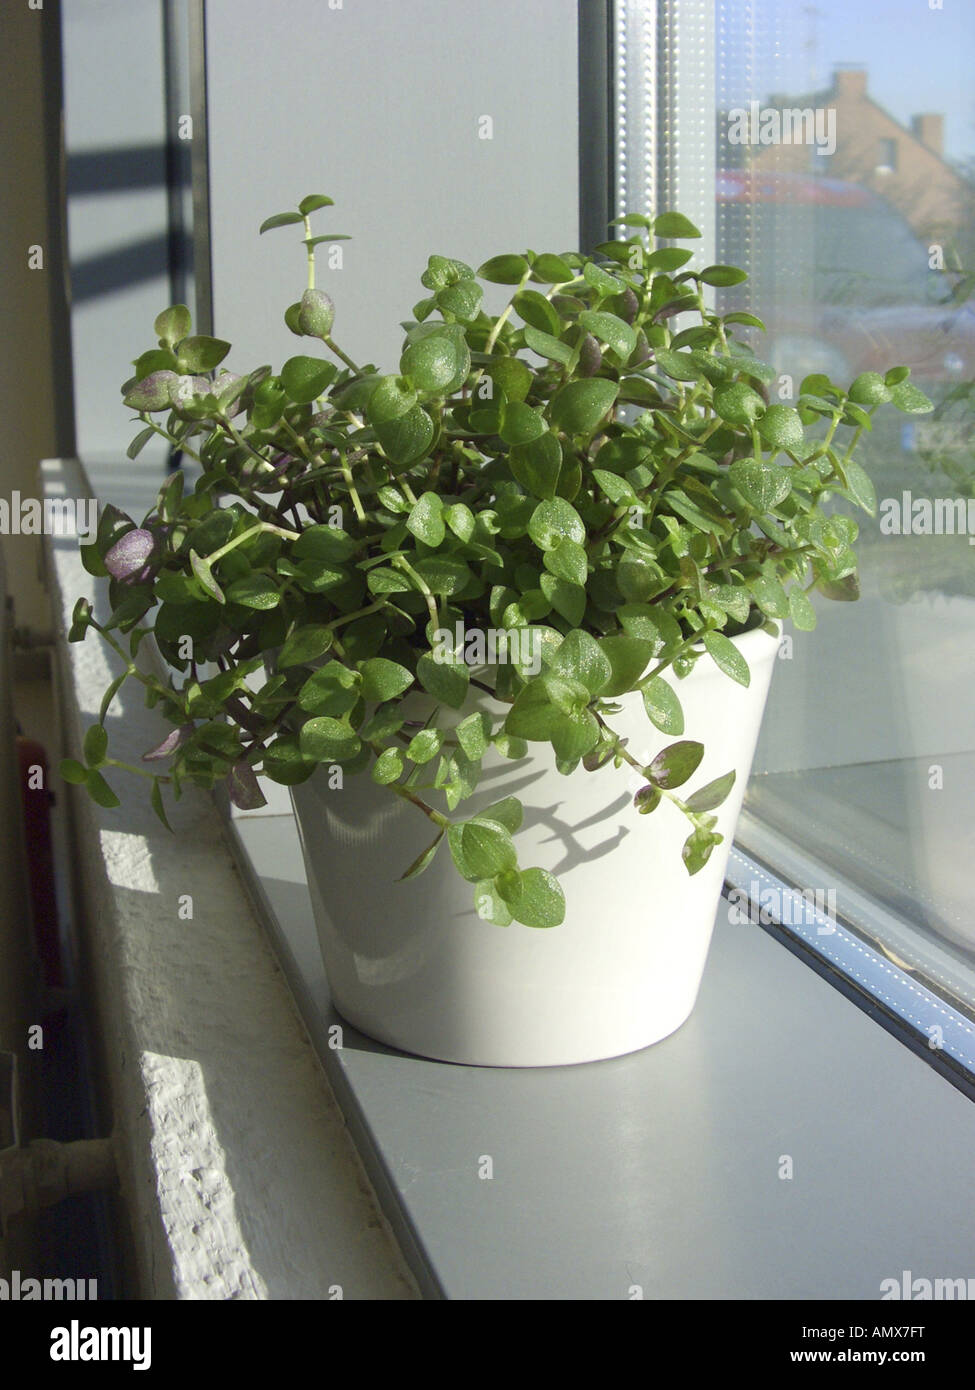 Turtle Vine Callisia Repens Potted Plant On A Windowsill Stock Photo Royalty Free Image